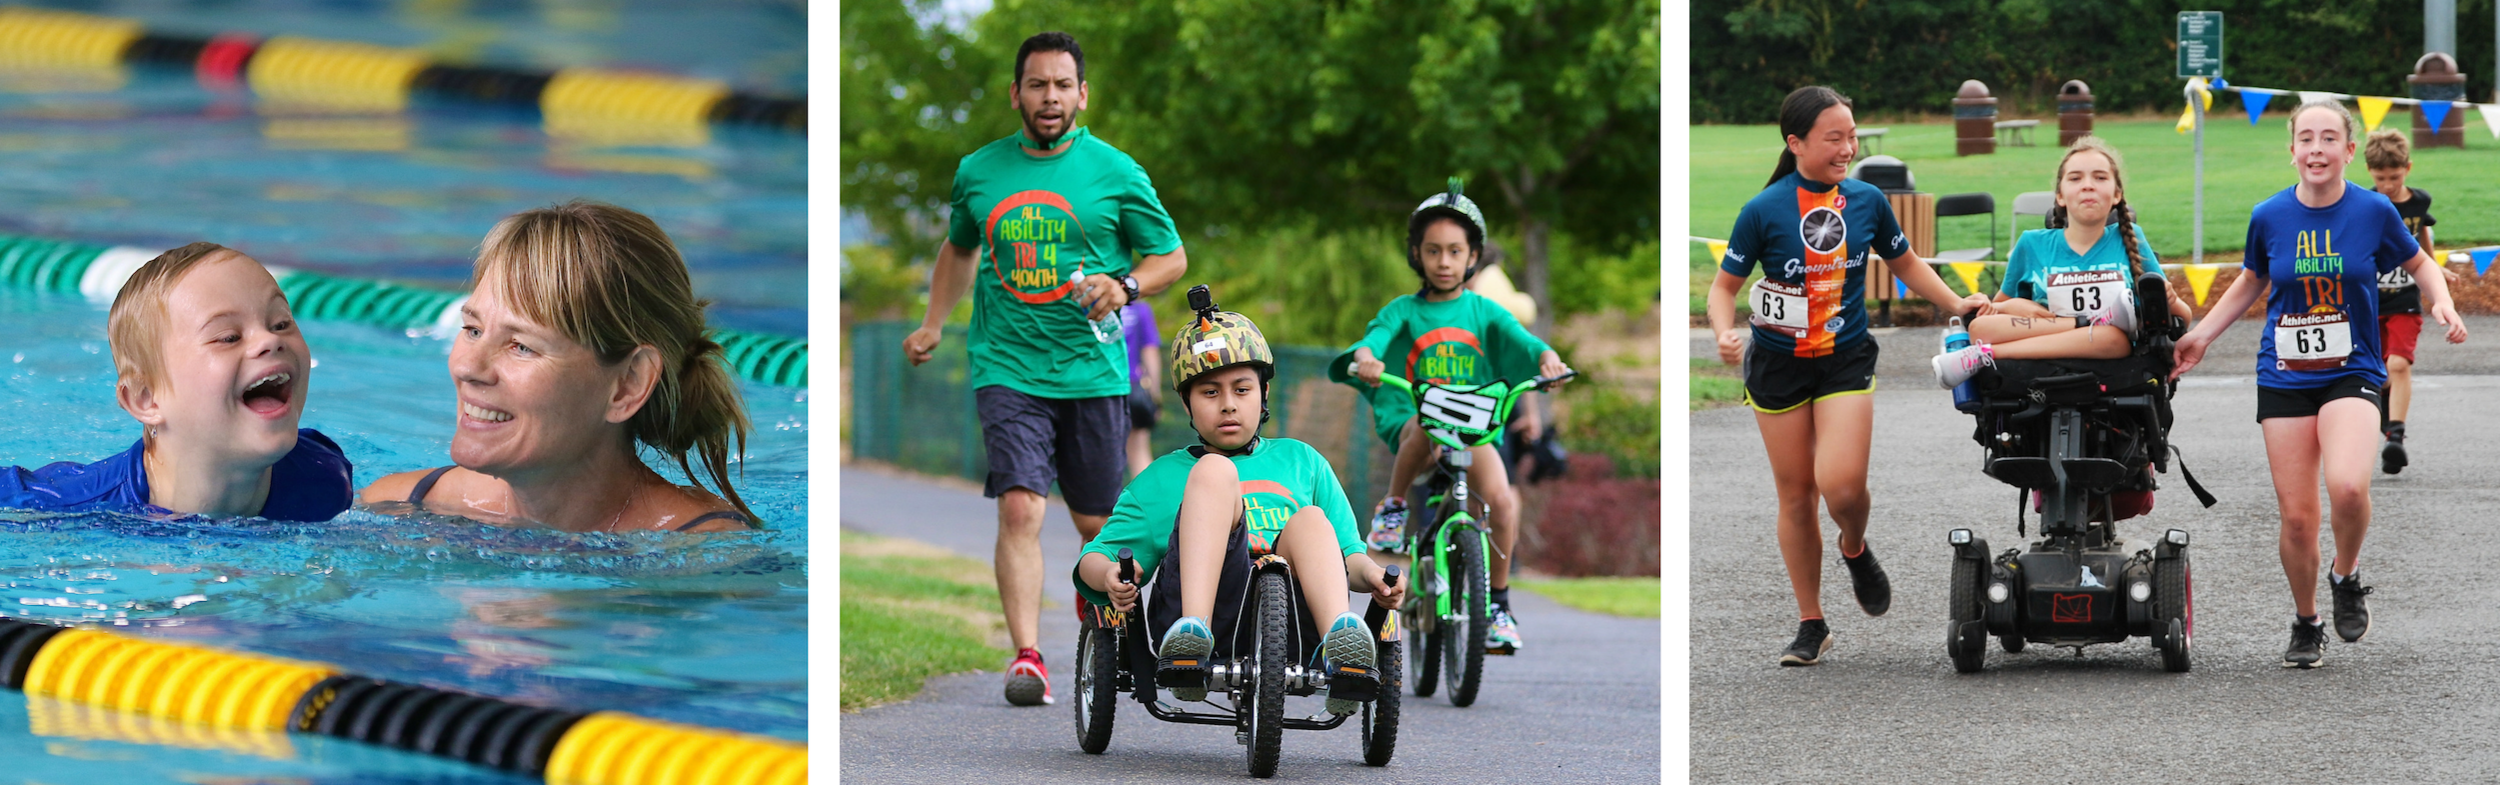 Three photos: One depicts a woman and child swimming together in a pool. One depicts an adult running, a child biking, and a youth using a recumbent bike, all wearing matching green t-shirts. And one depicts two youth running on either side of a third youth in a power chair, all three with race numbers pinned to their shirts.